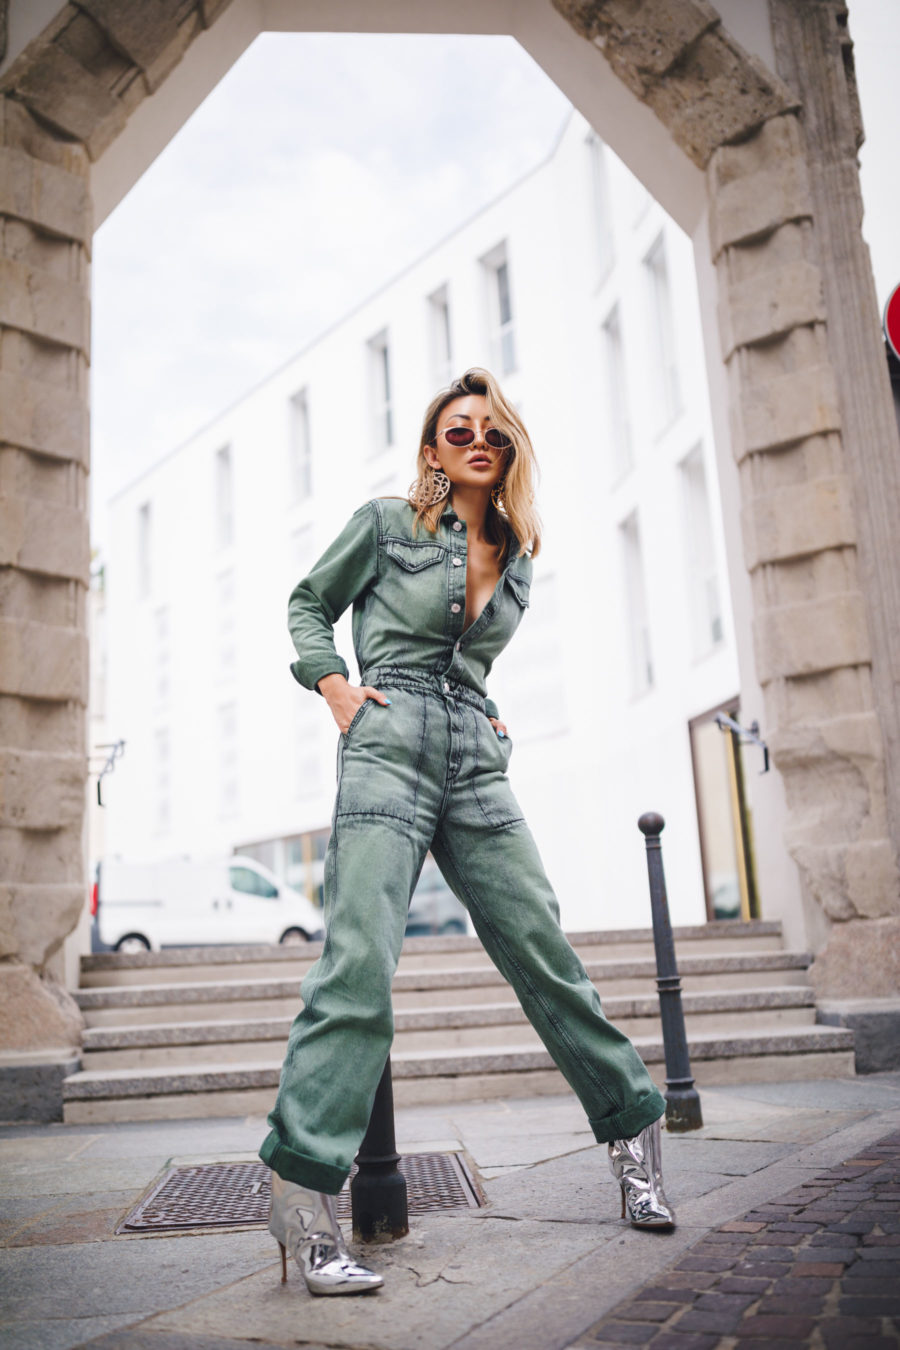 jessica wang shares ways to achieve your goals in 2019, fashion blogger jessica wang wearing denim boiler suit with metallic boots during MFW // Notjessfashion.com